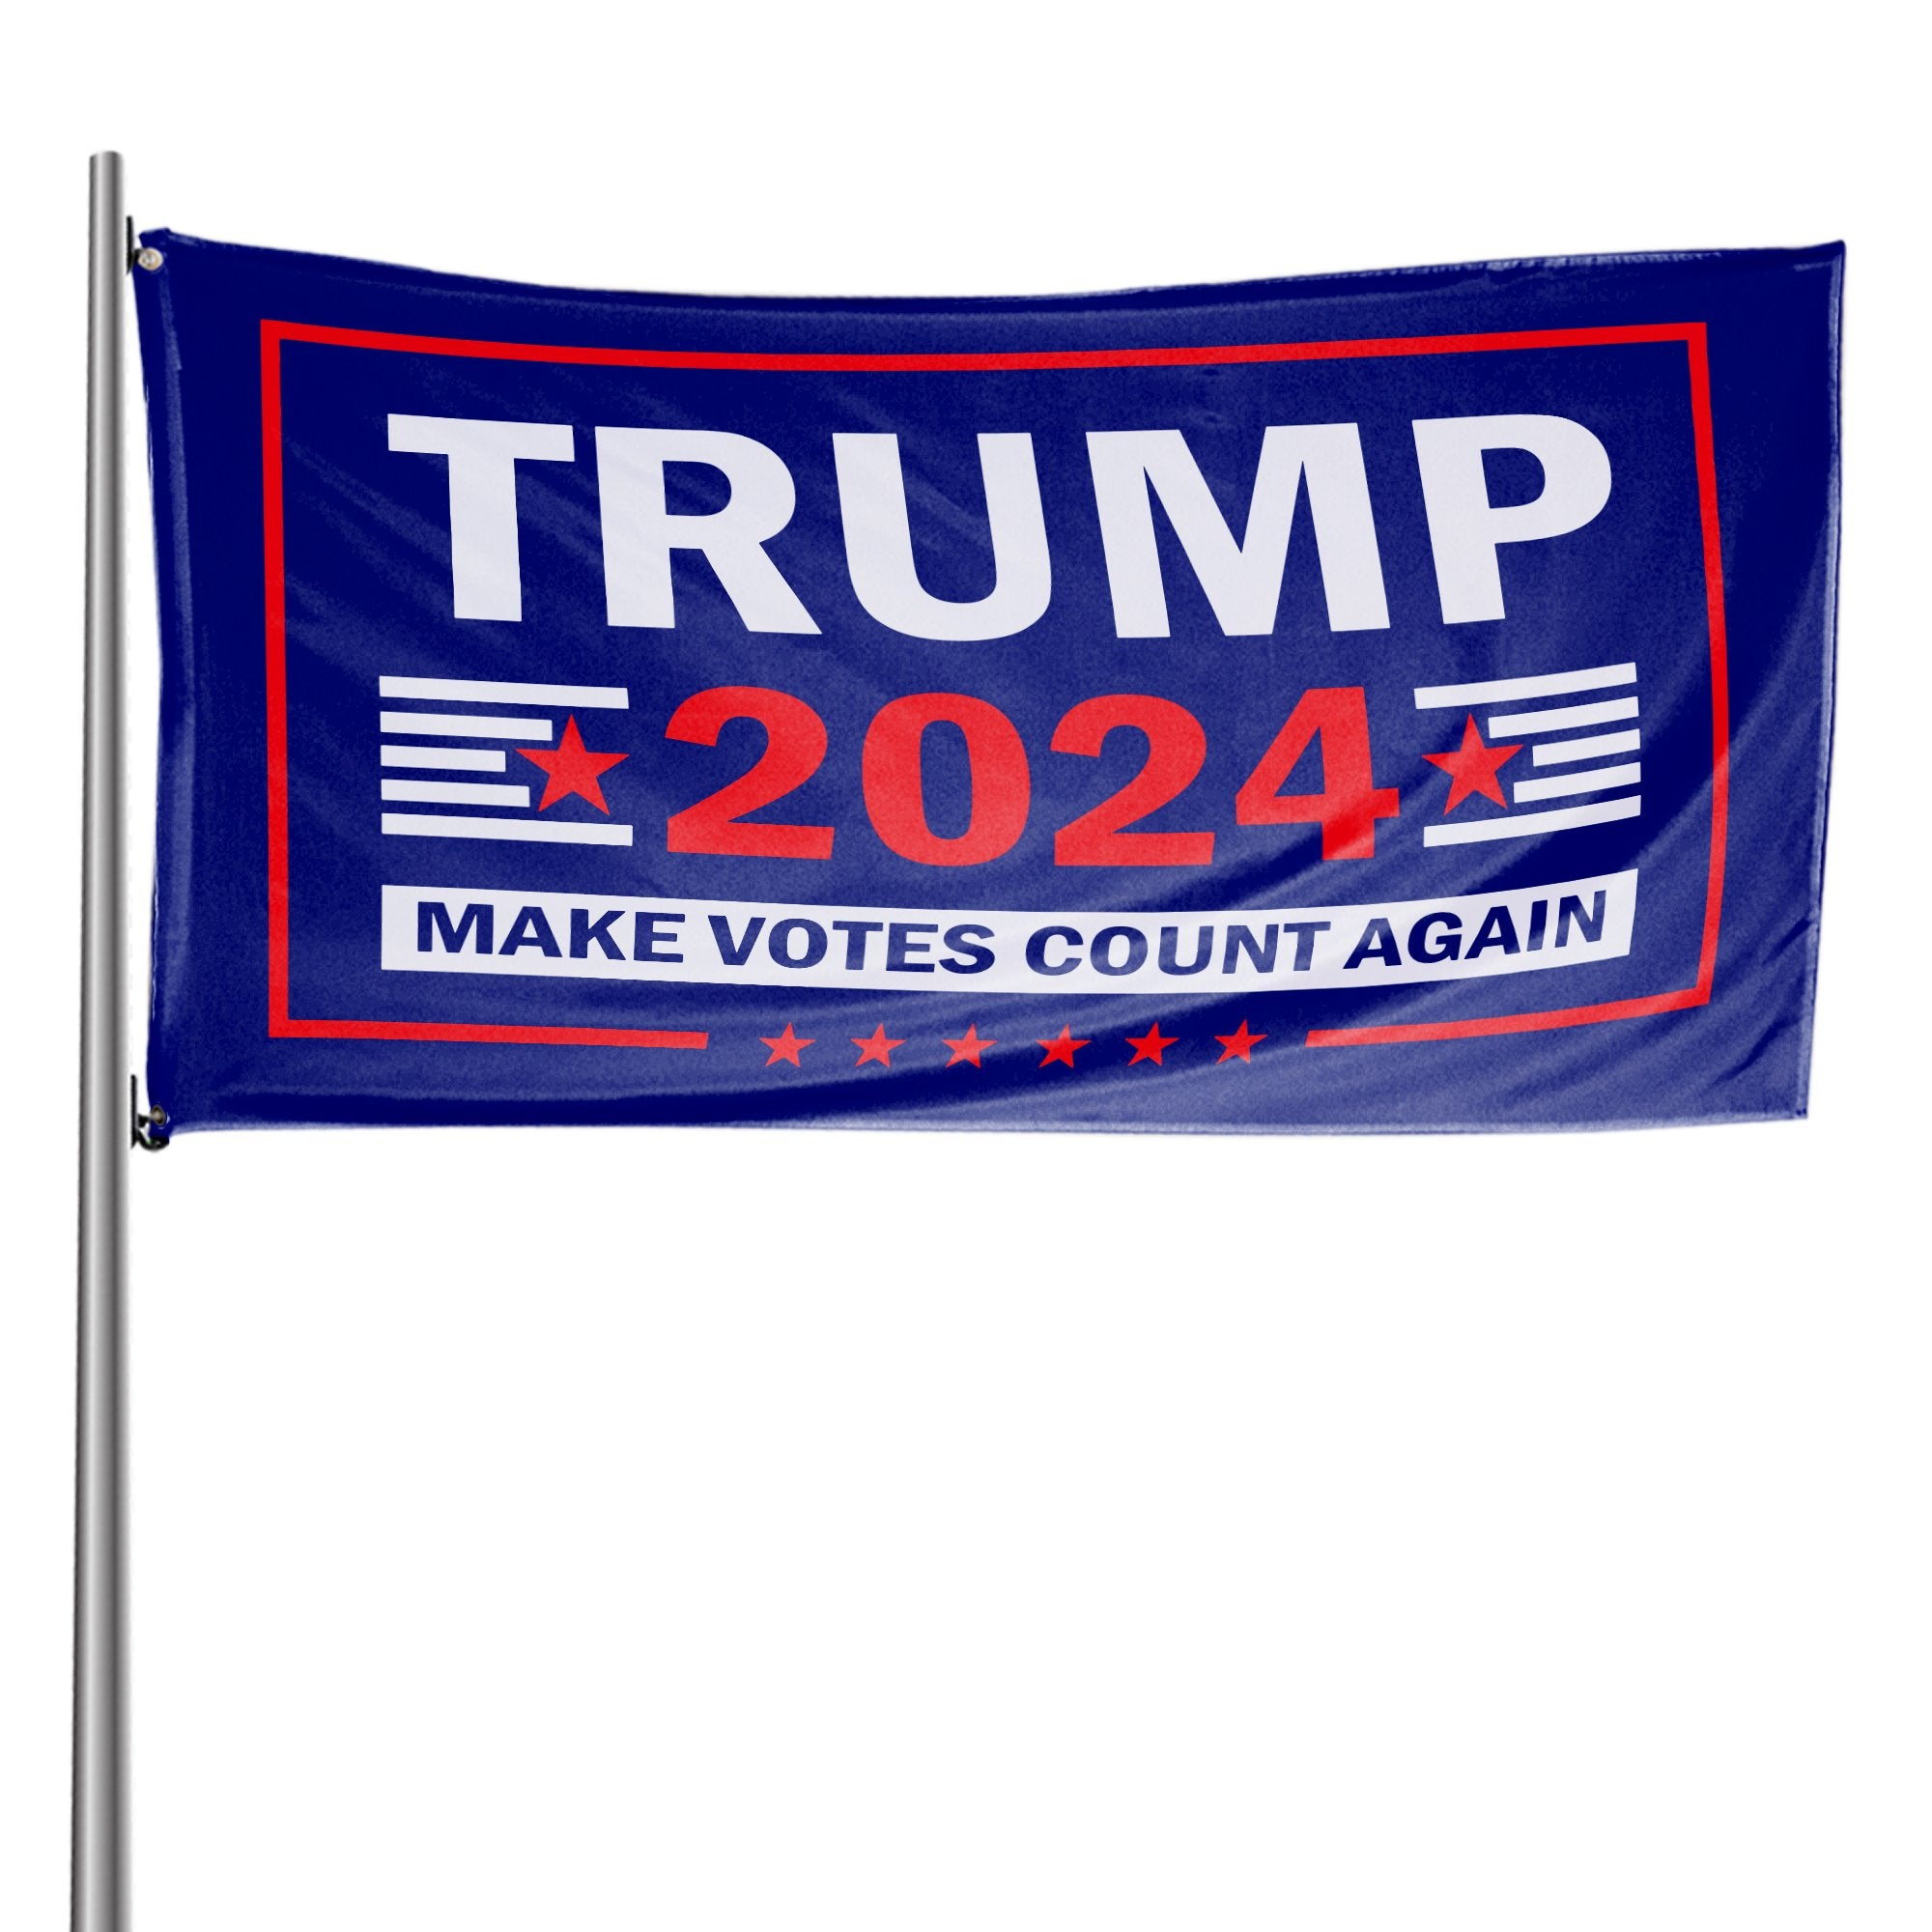 Trump 2024 Make Votes Count Again & Vermont For Trump 3 x 5 Flag Bundle